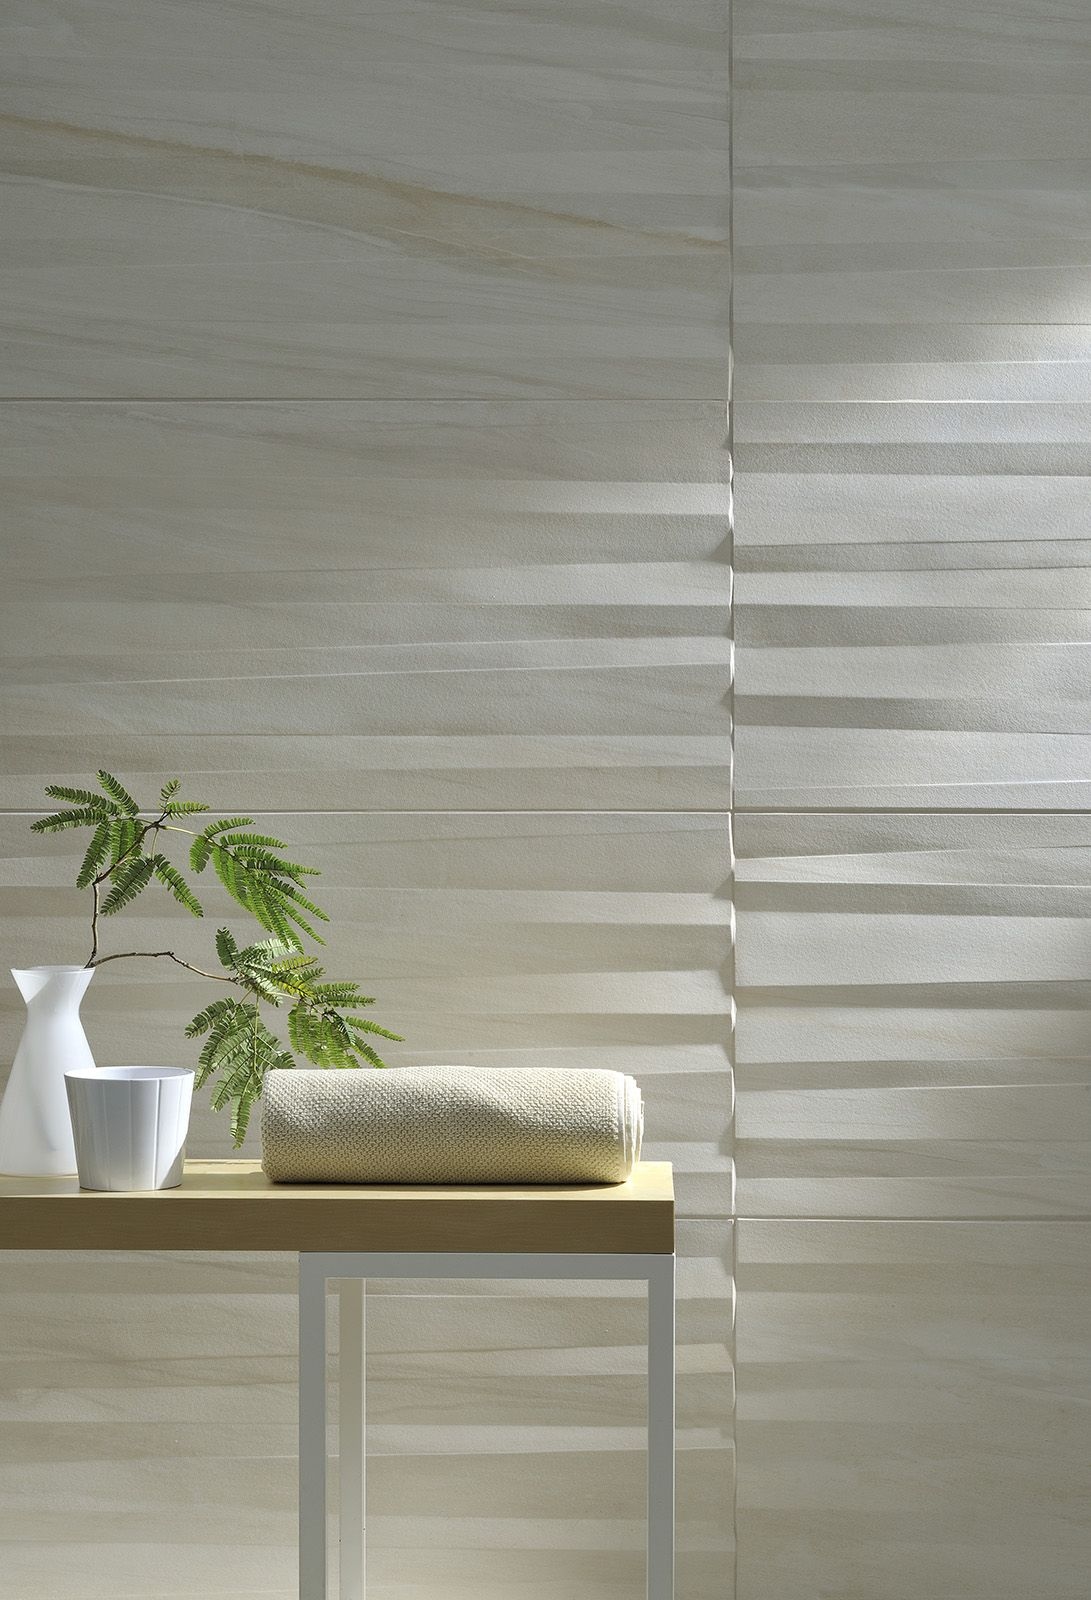 Amazing 3D wall tiles with a unusual concertina pattern ...